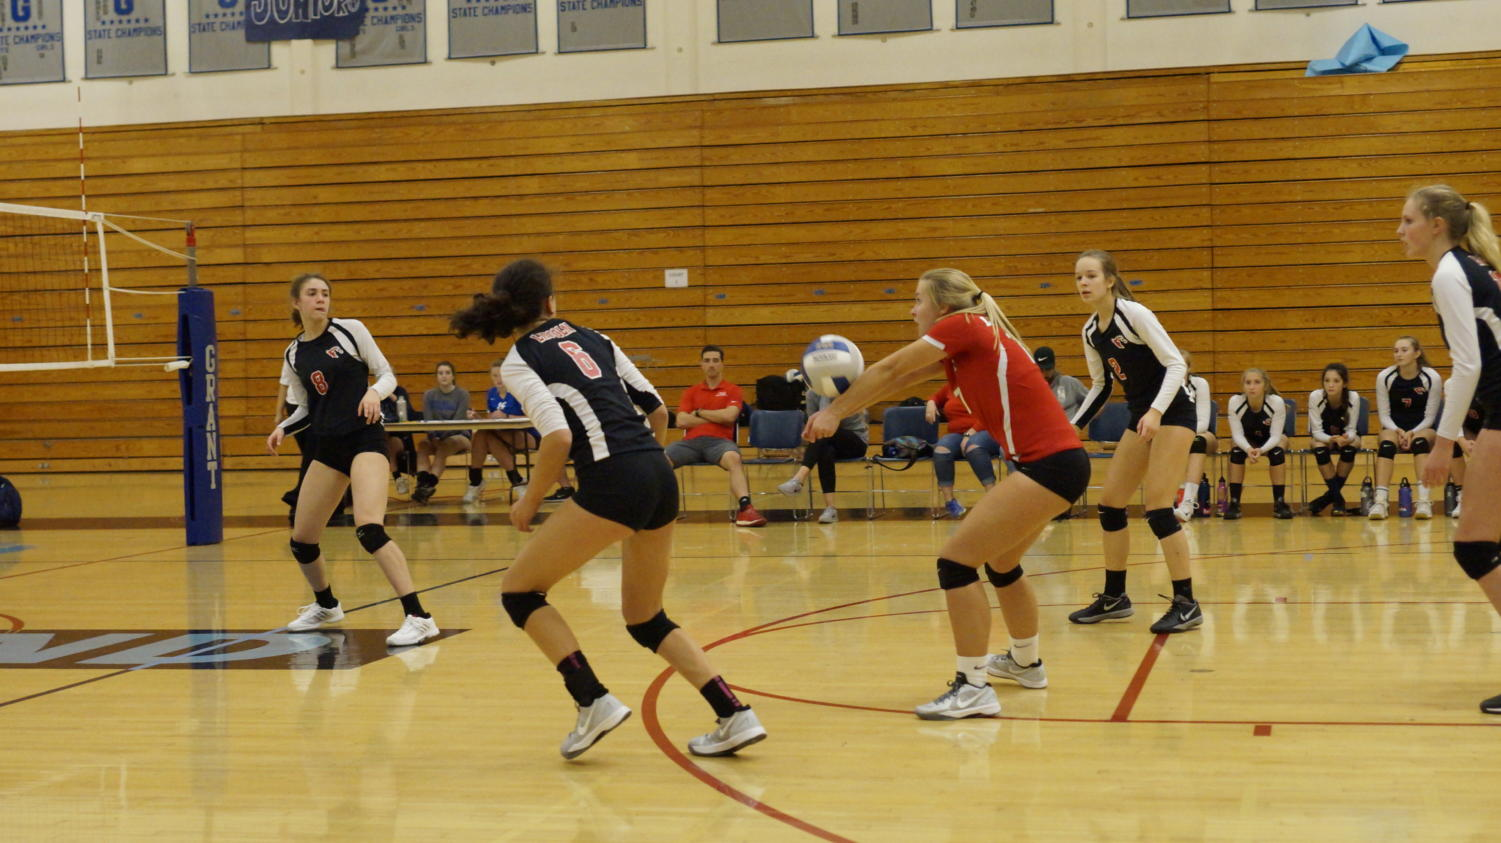 Junior Grace Zilbert (center) plays a ball during a 3-1 victory at Grant on Oct. 11.